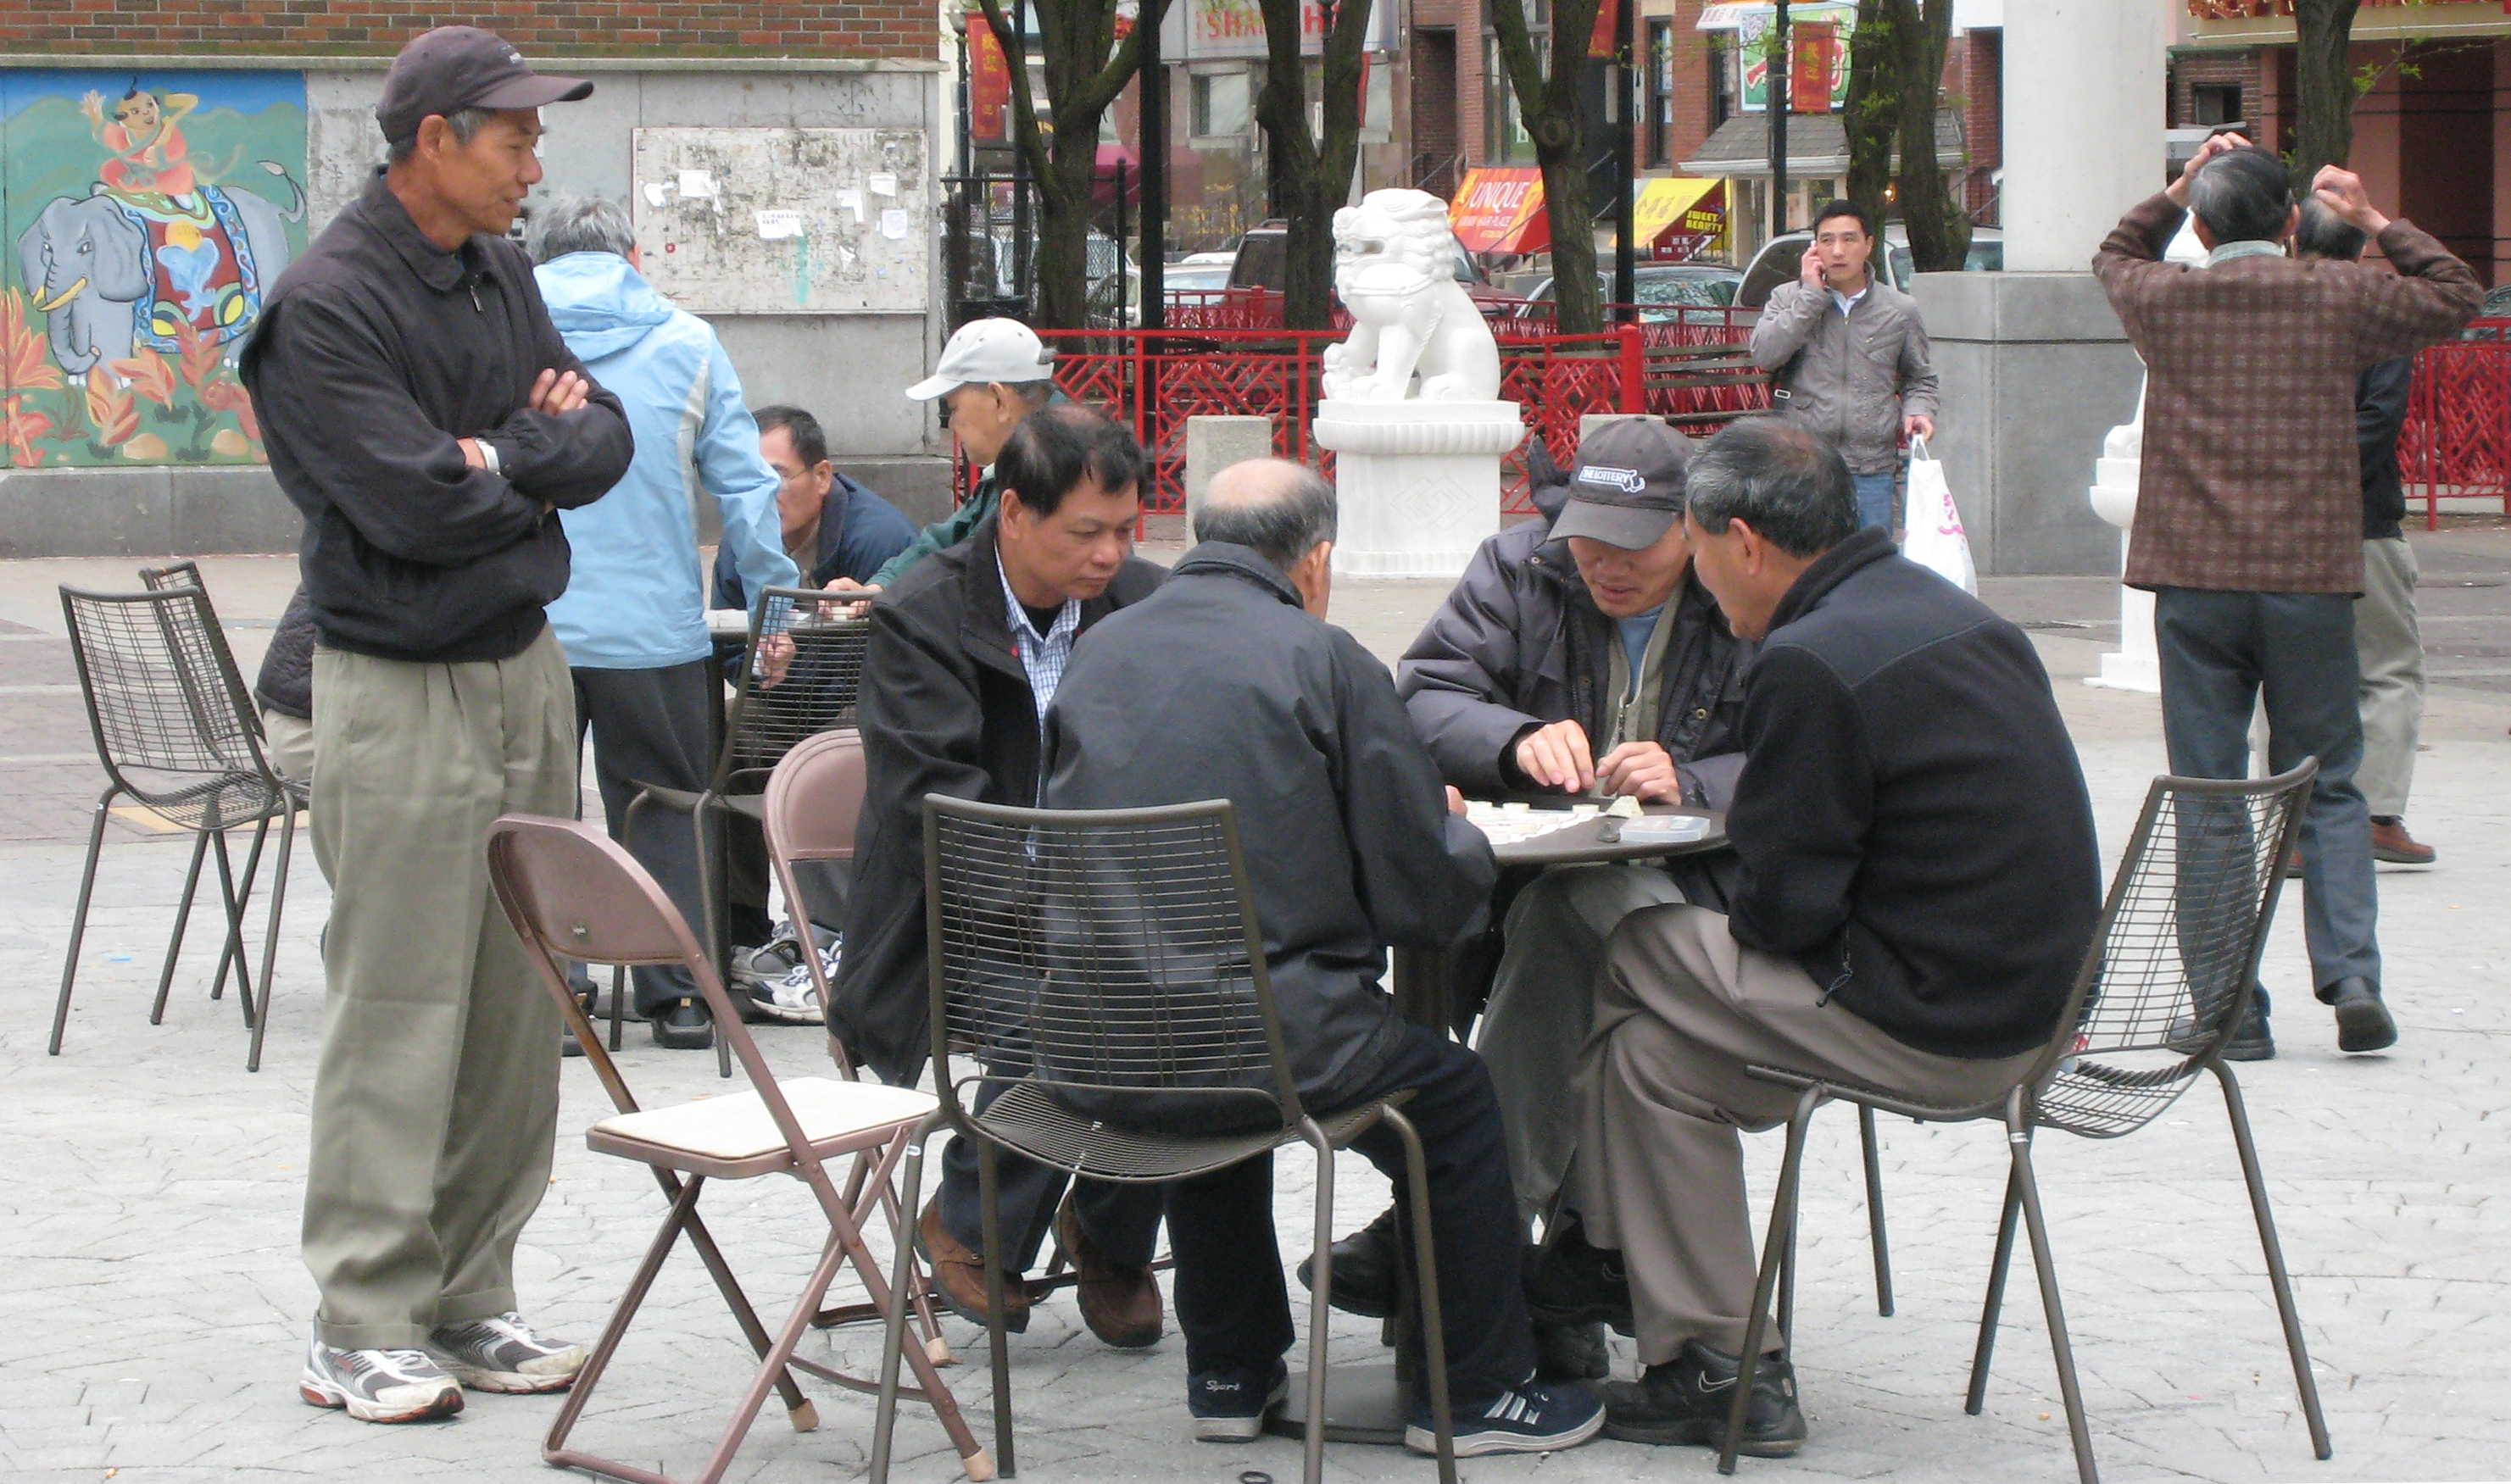 Men sitting at a table in Boston's Chinatown